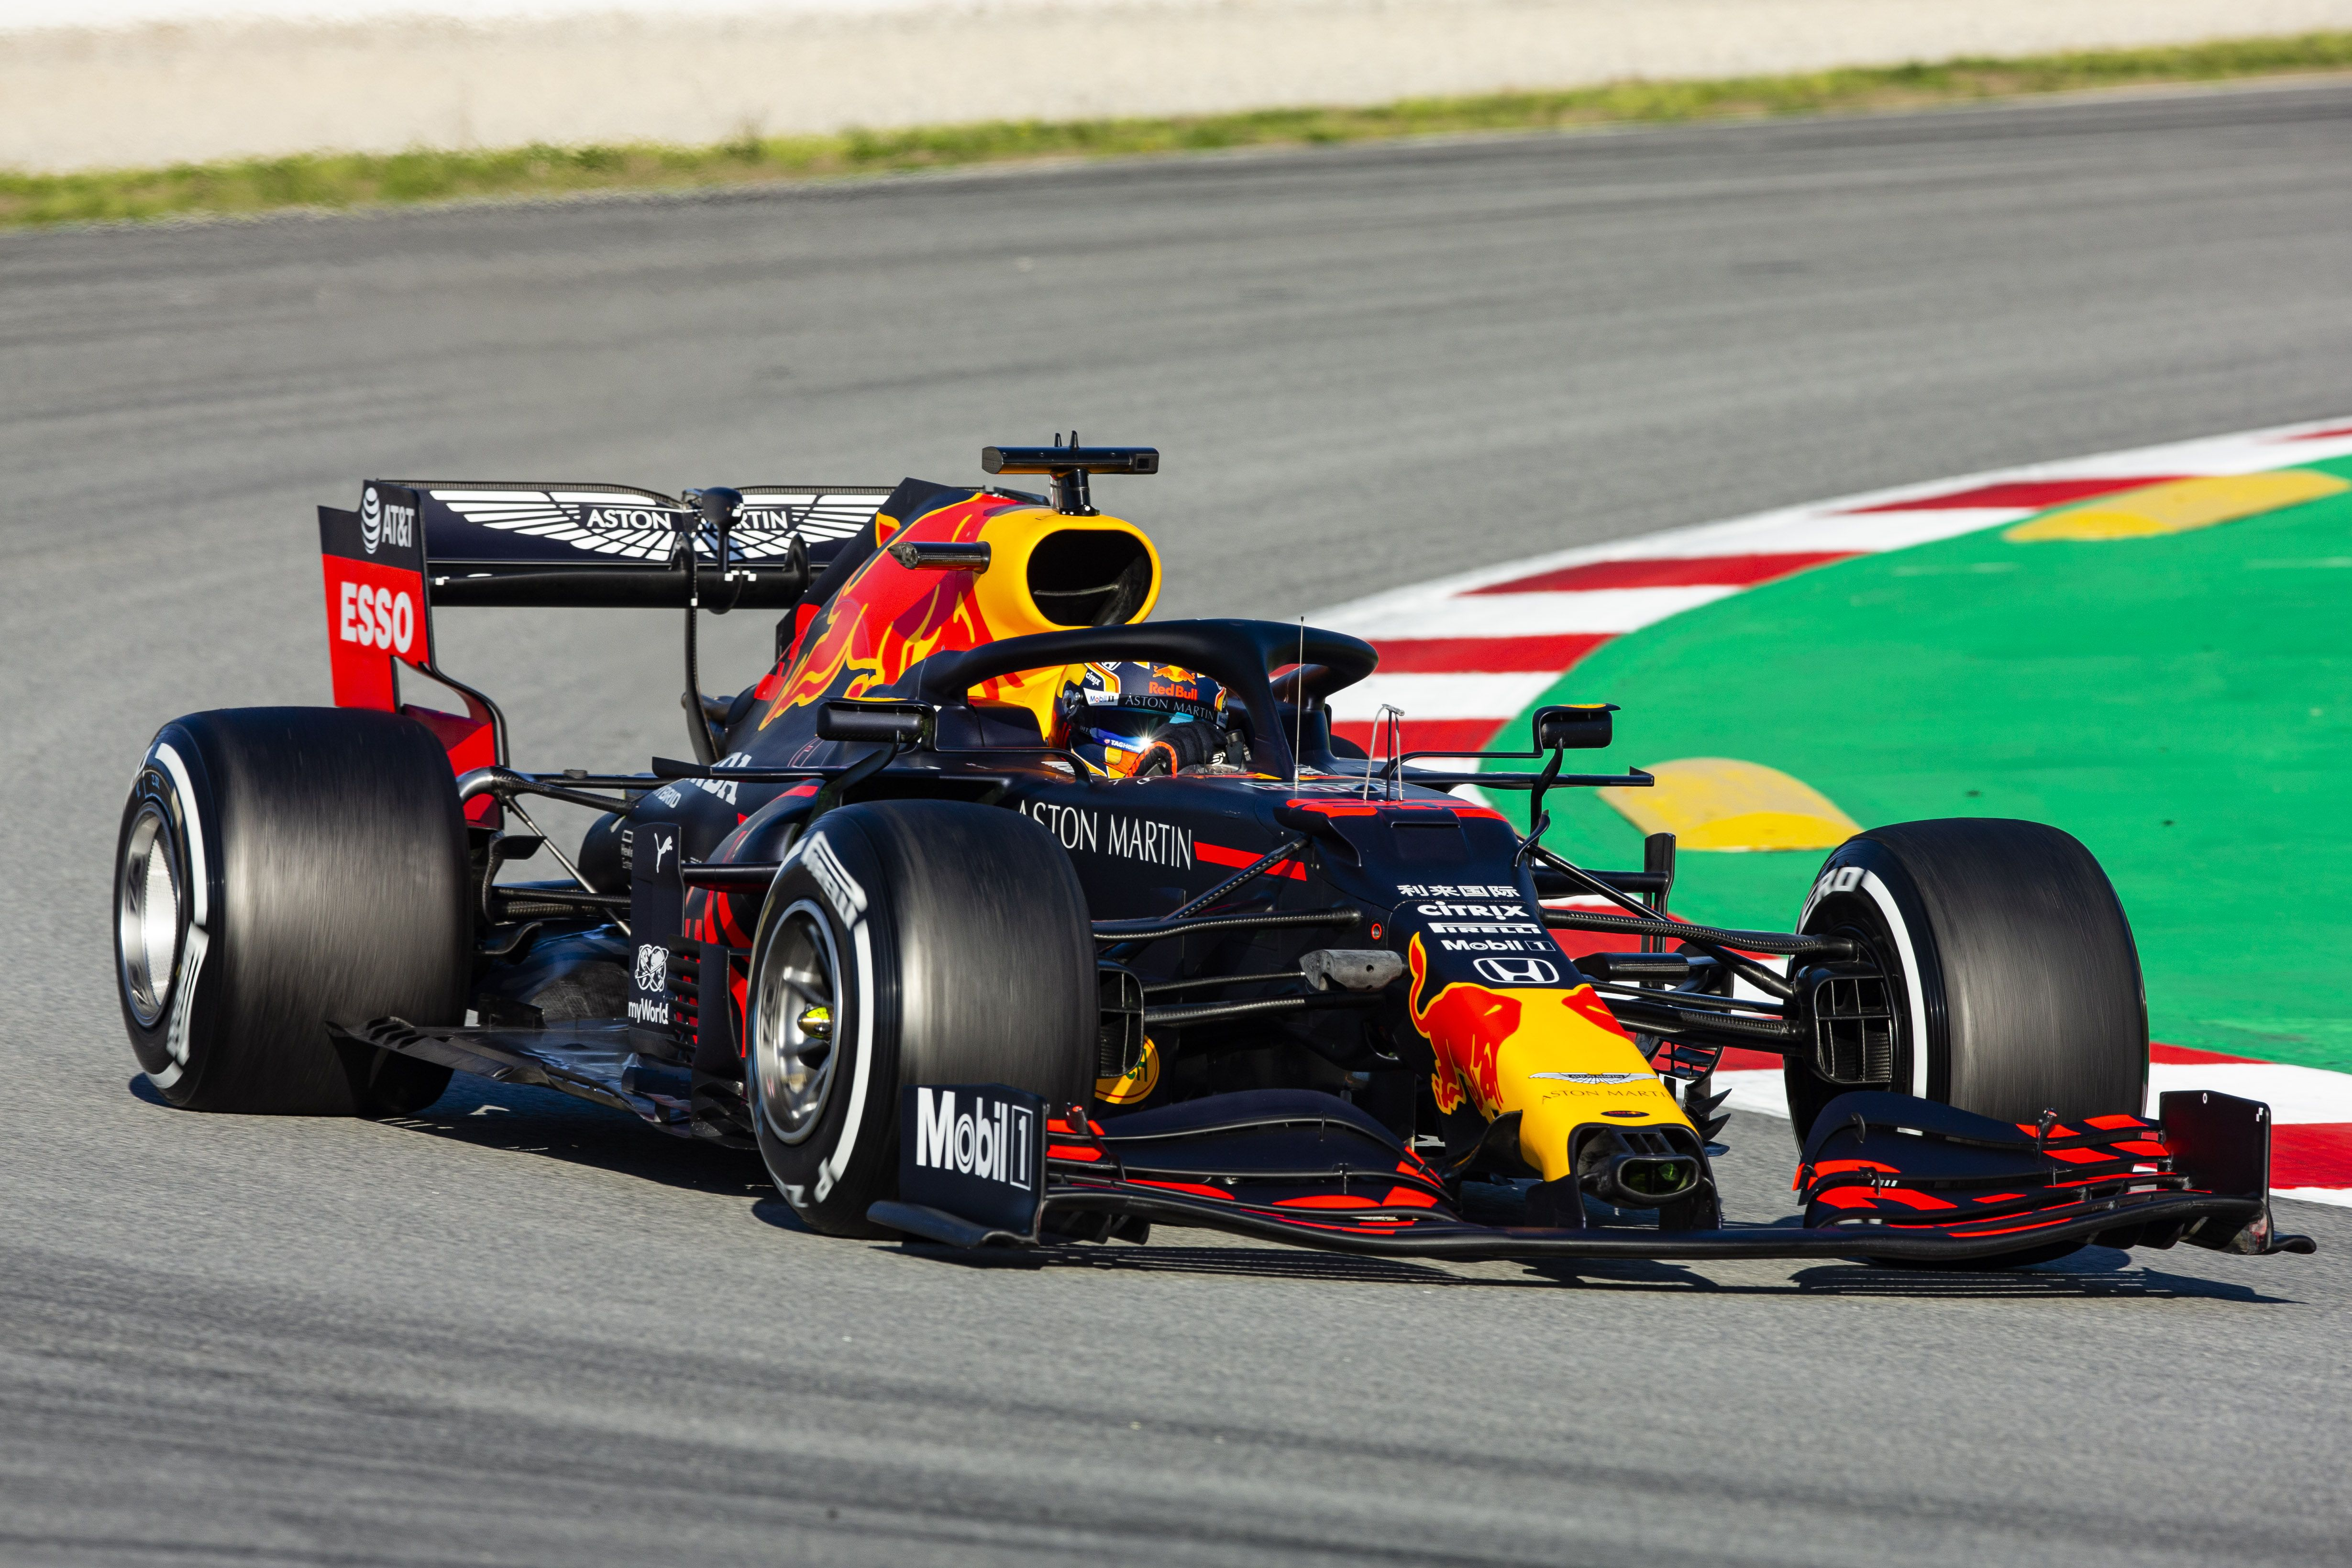 Red Bull S Albon Says He S Not Feeling Heat After Modest Start To 2020 F1 Season